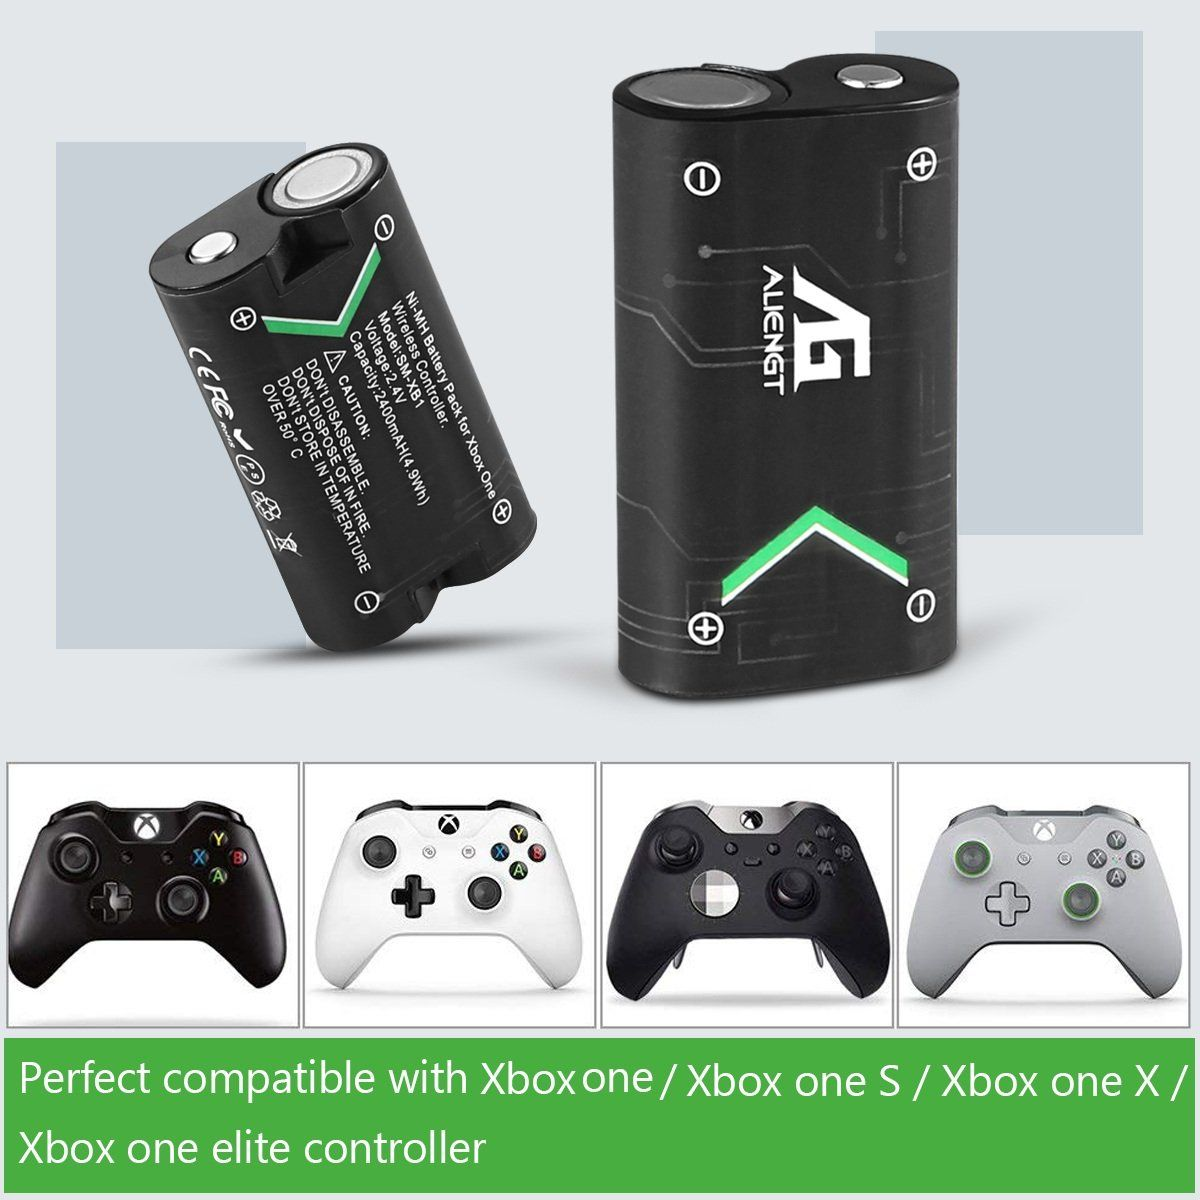 Xbox One Controller Battery Pack 2 X 2500mah Rechargeable Xbox One Battery Pack Fast Charging Xbox One Batte Xbox One Controller Xbox One S Wireless Controller